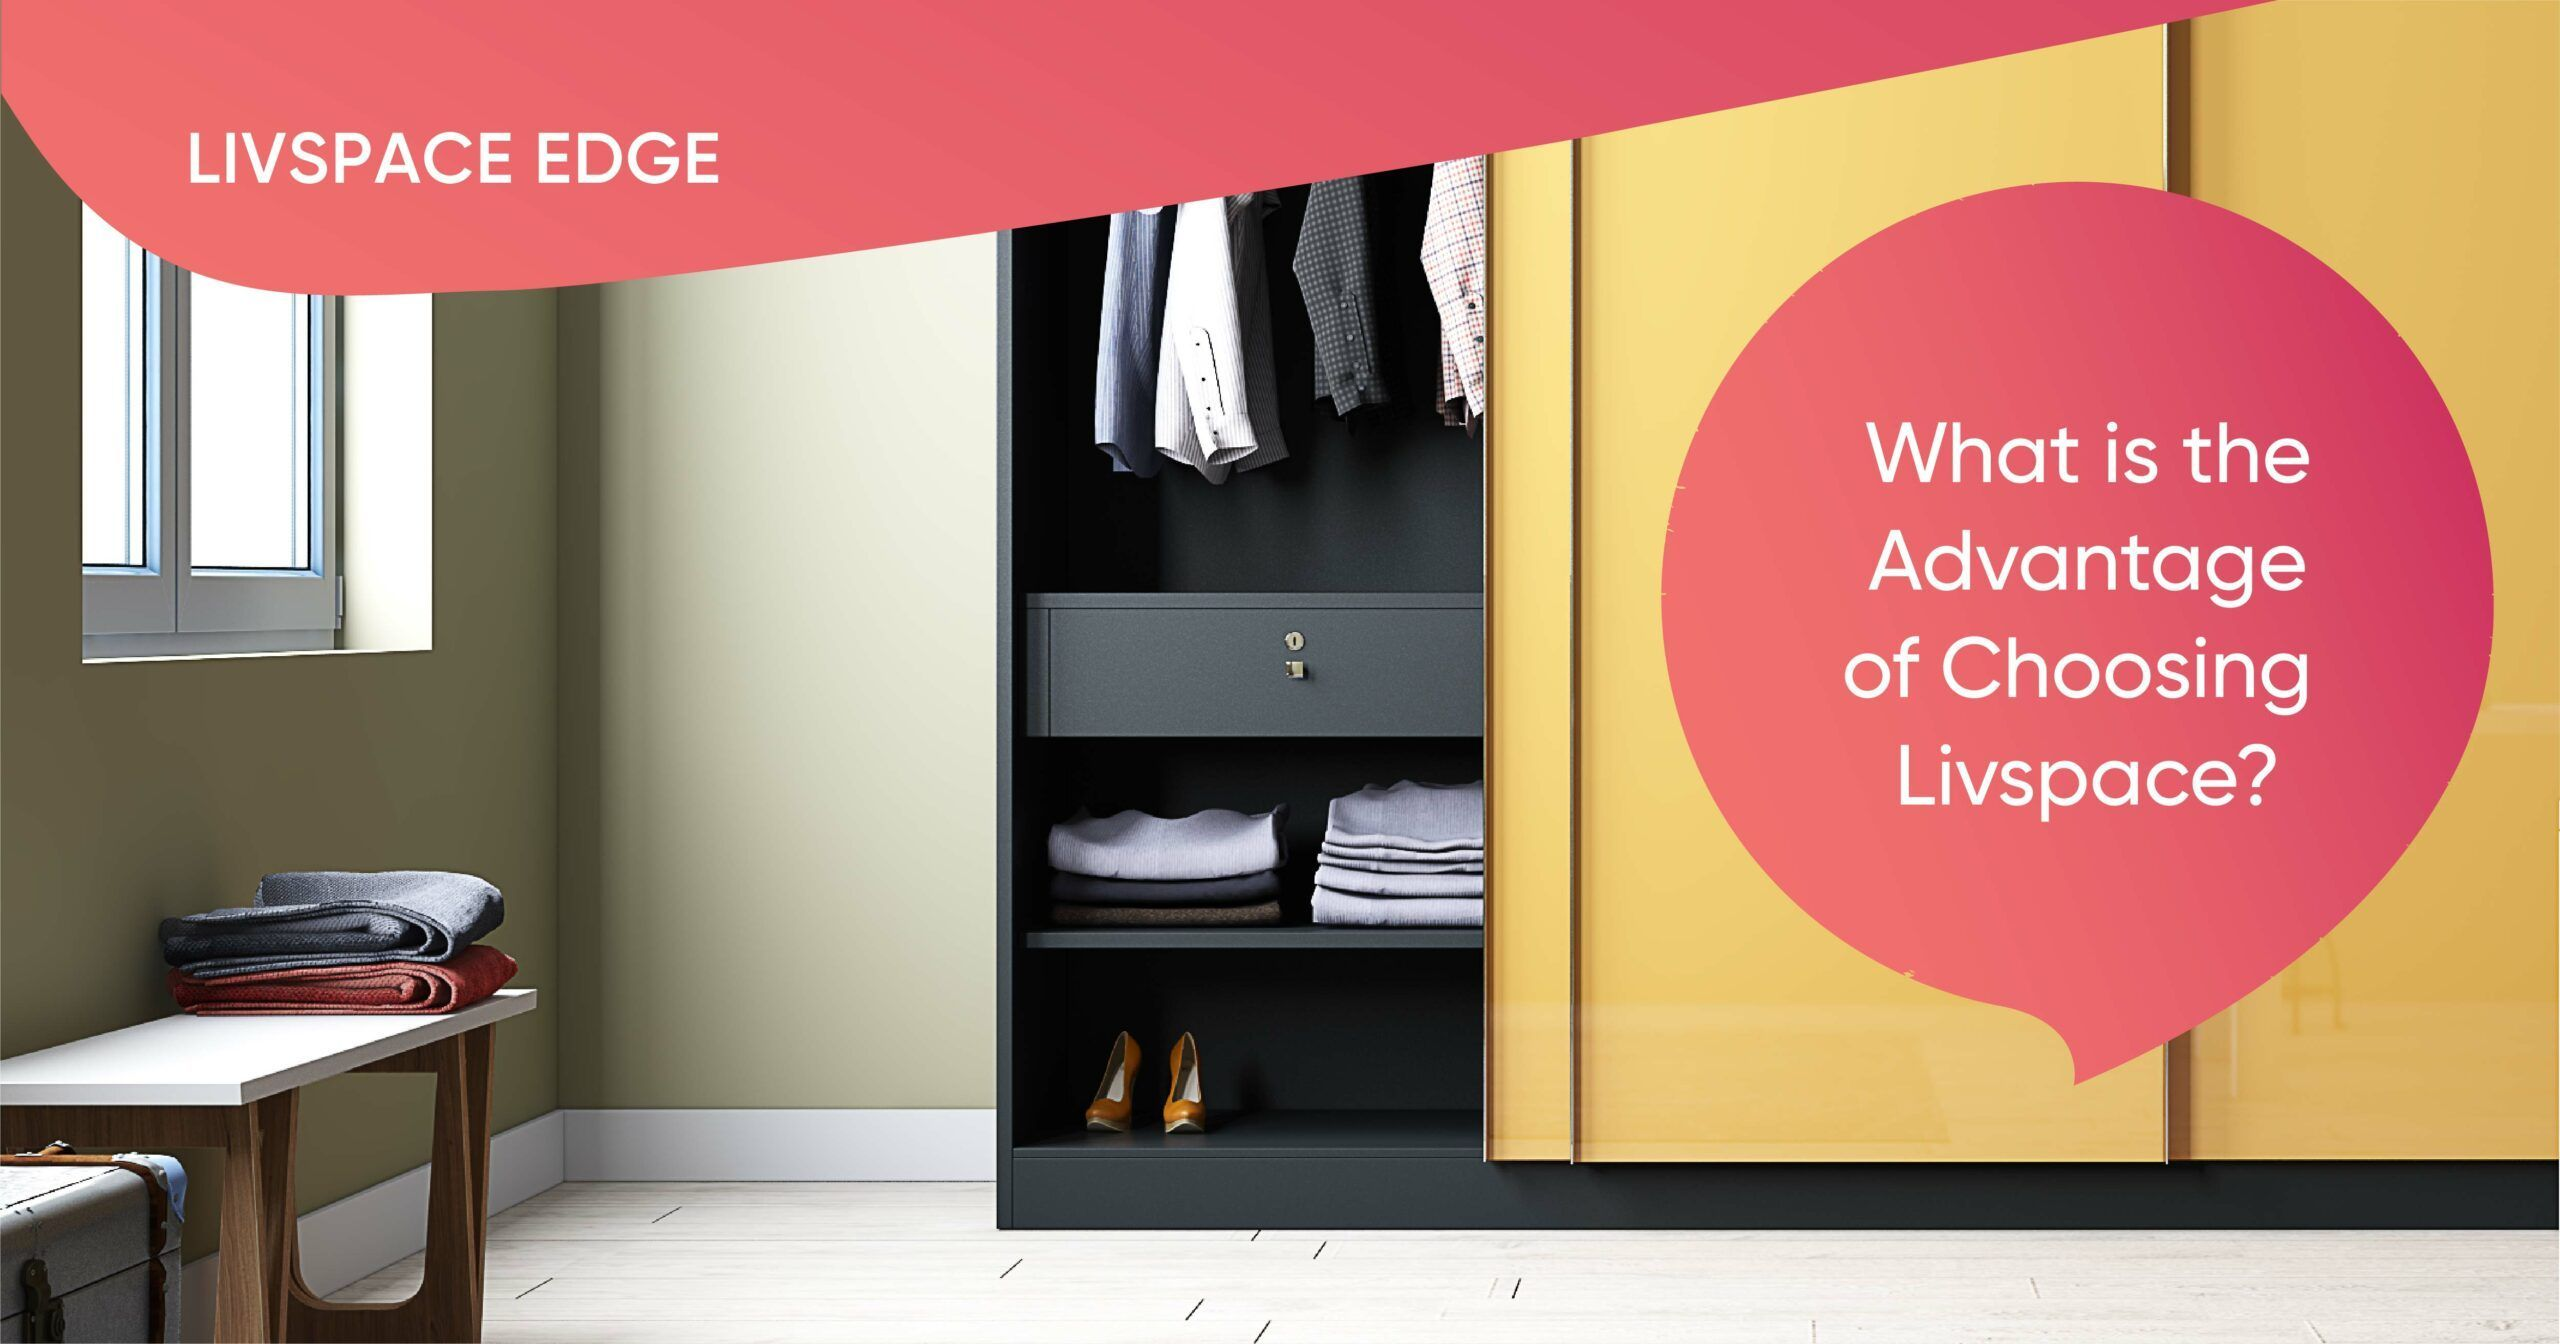 146 Reasons to Choose Livspace